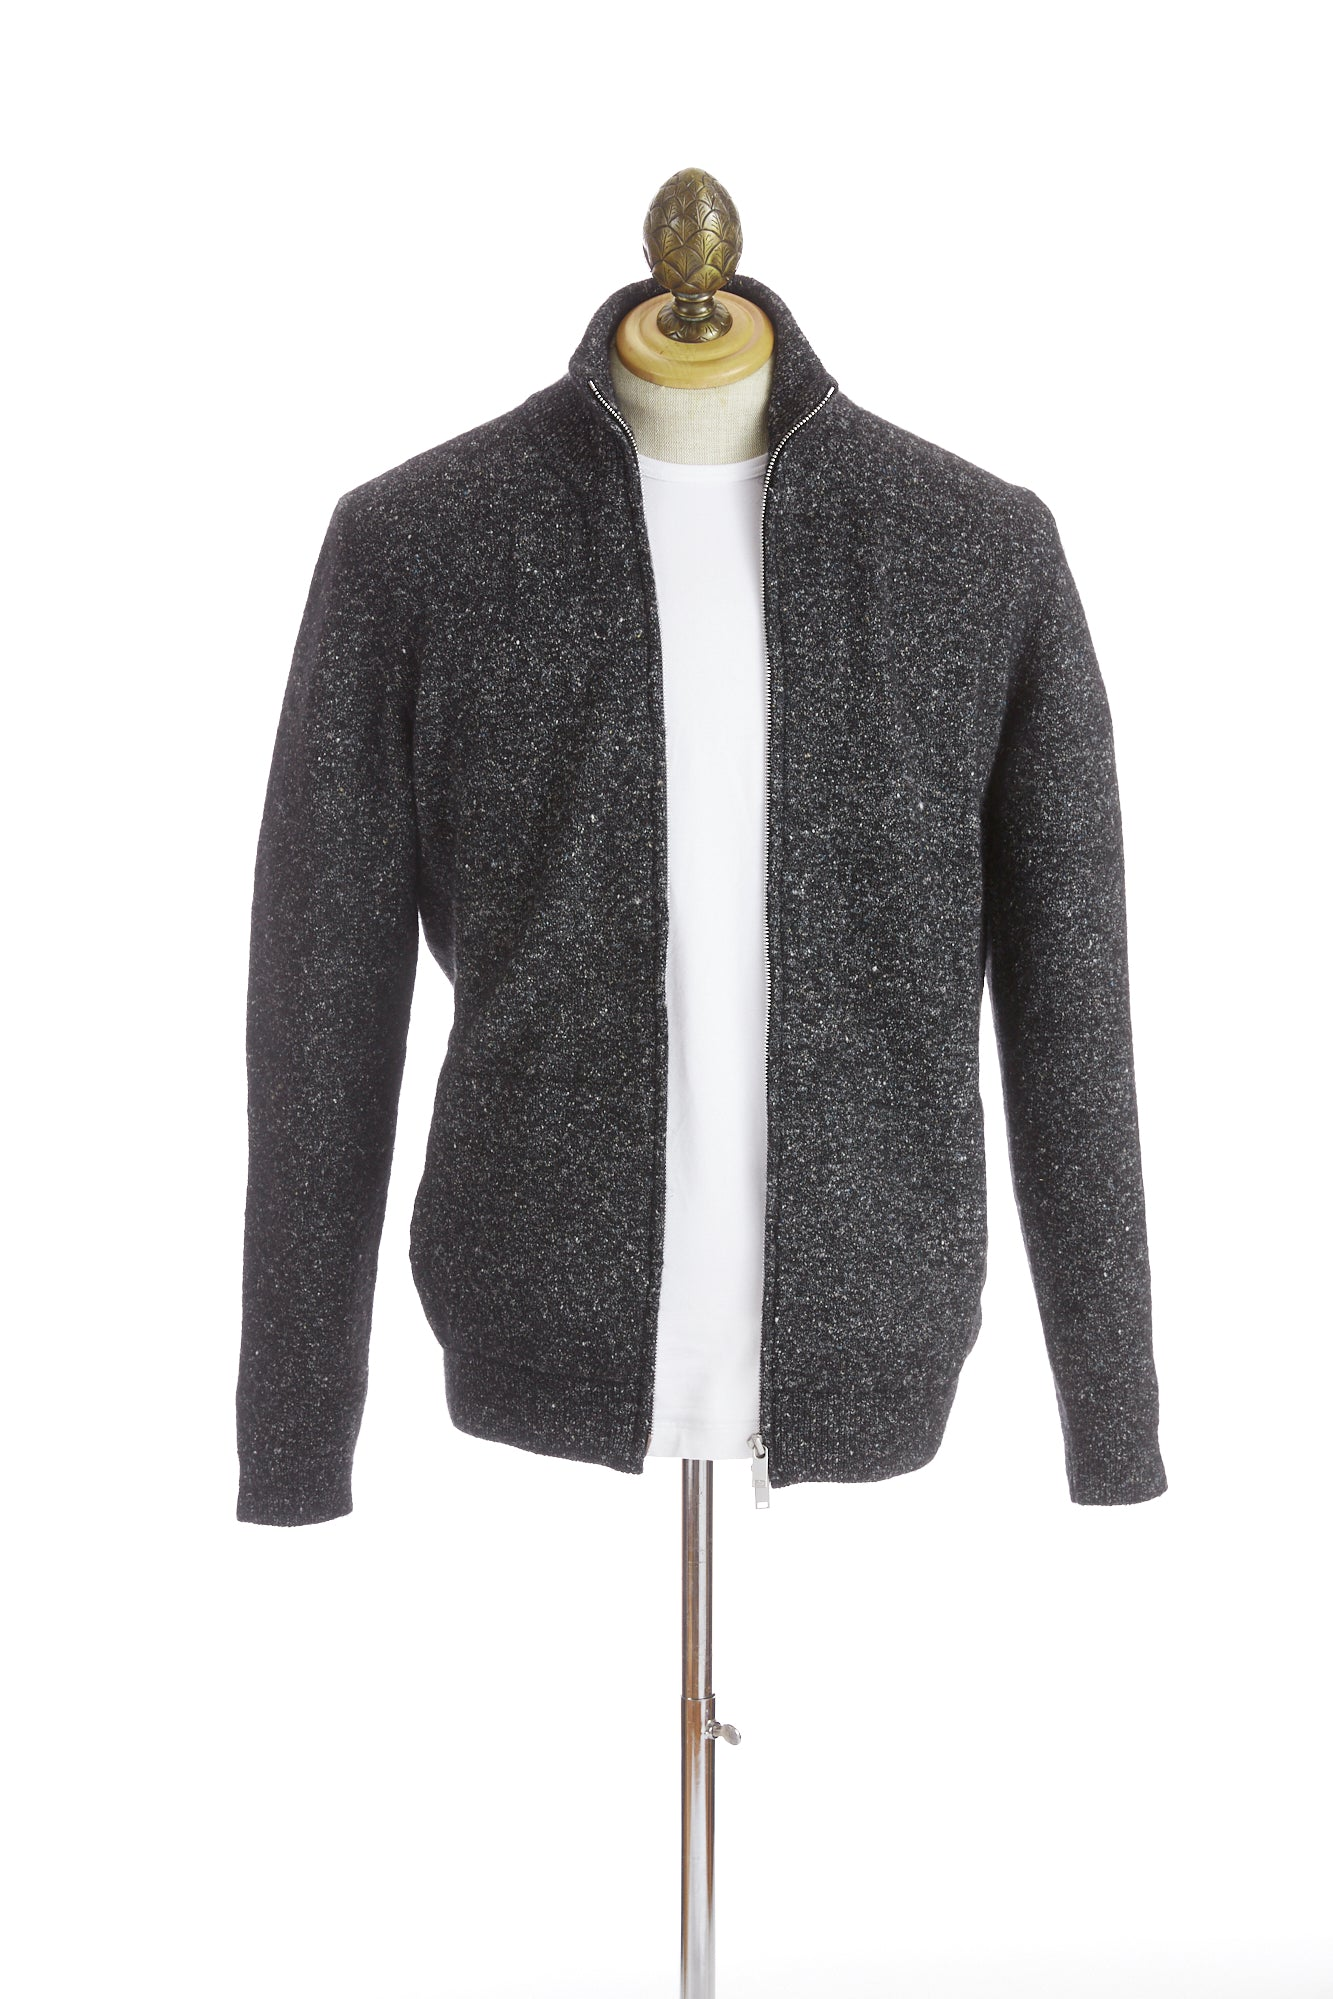 Roberto Collina Grey Donegal Full-Zip Sweater